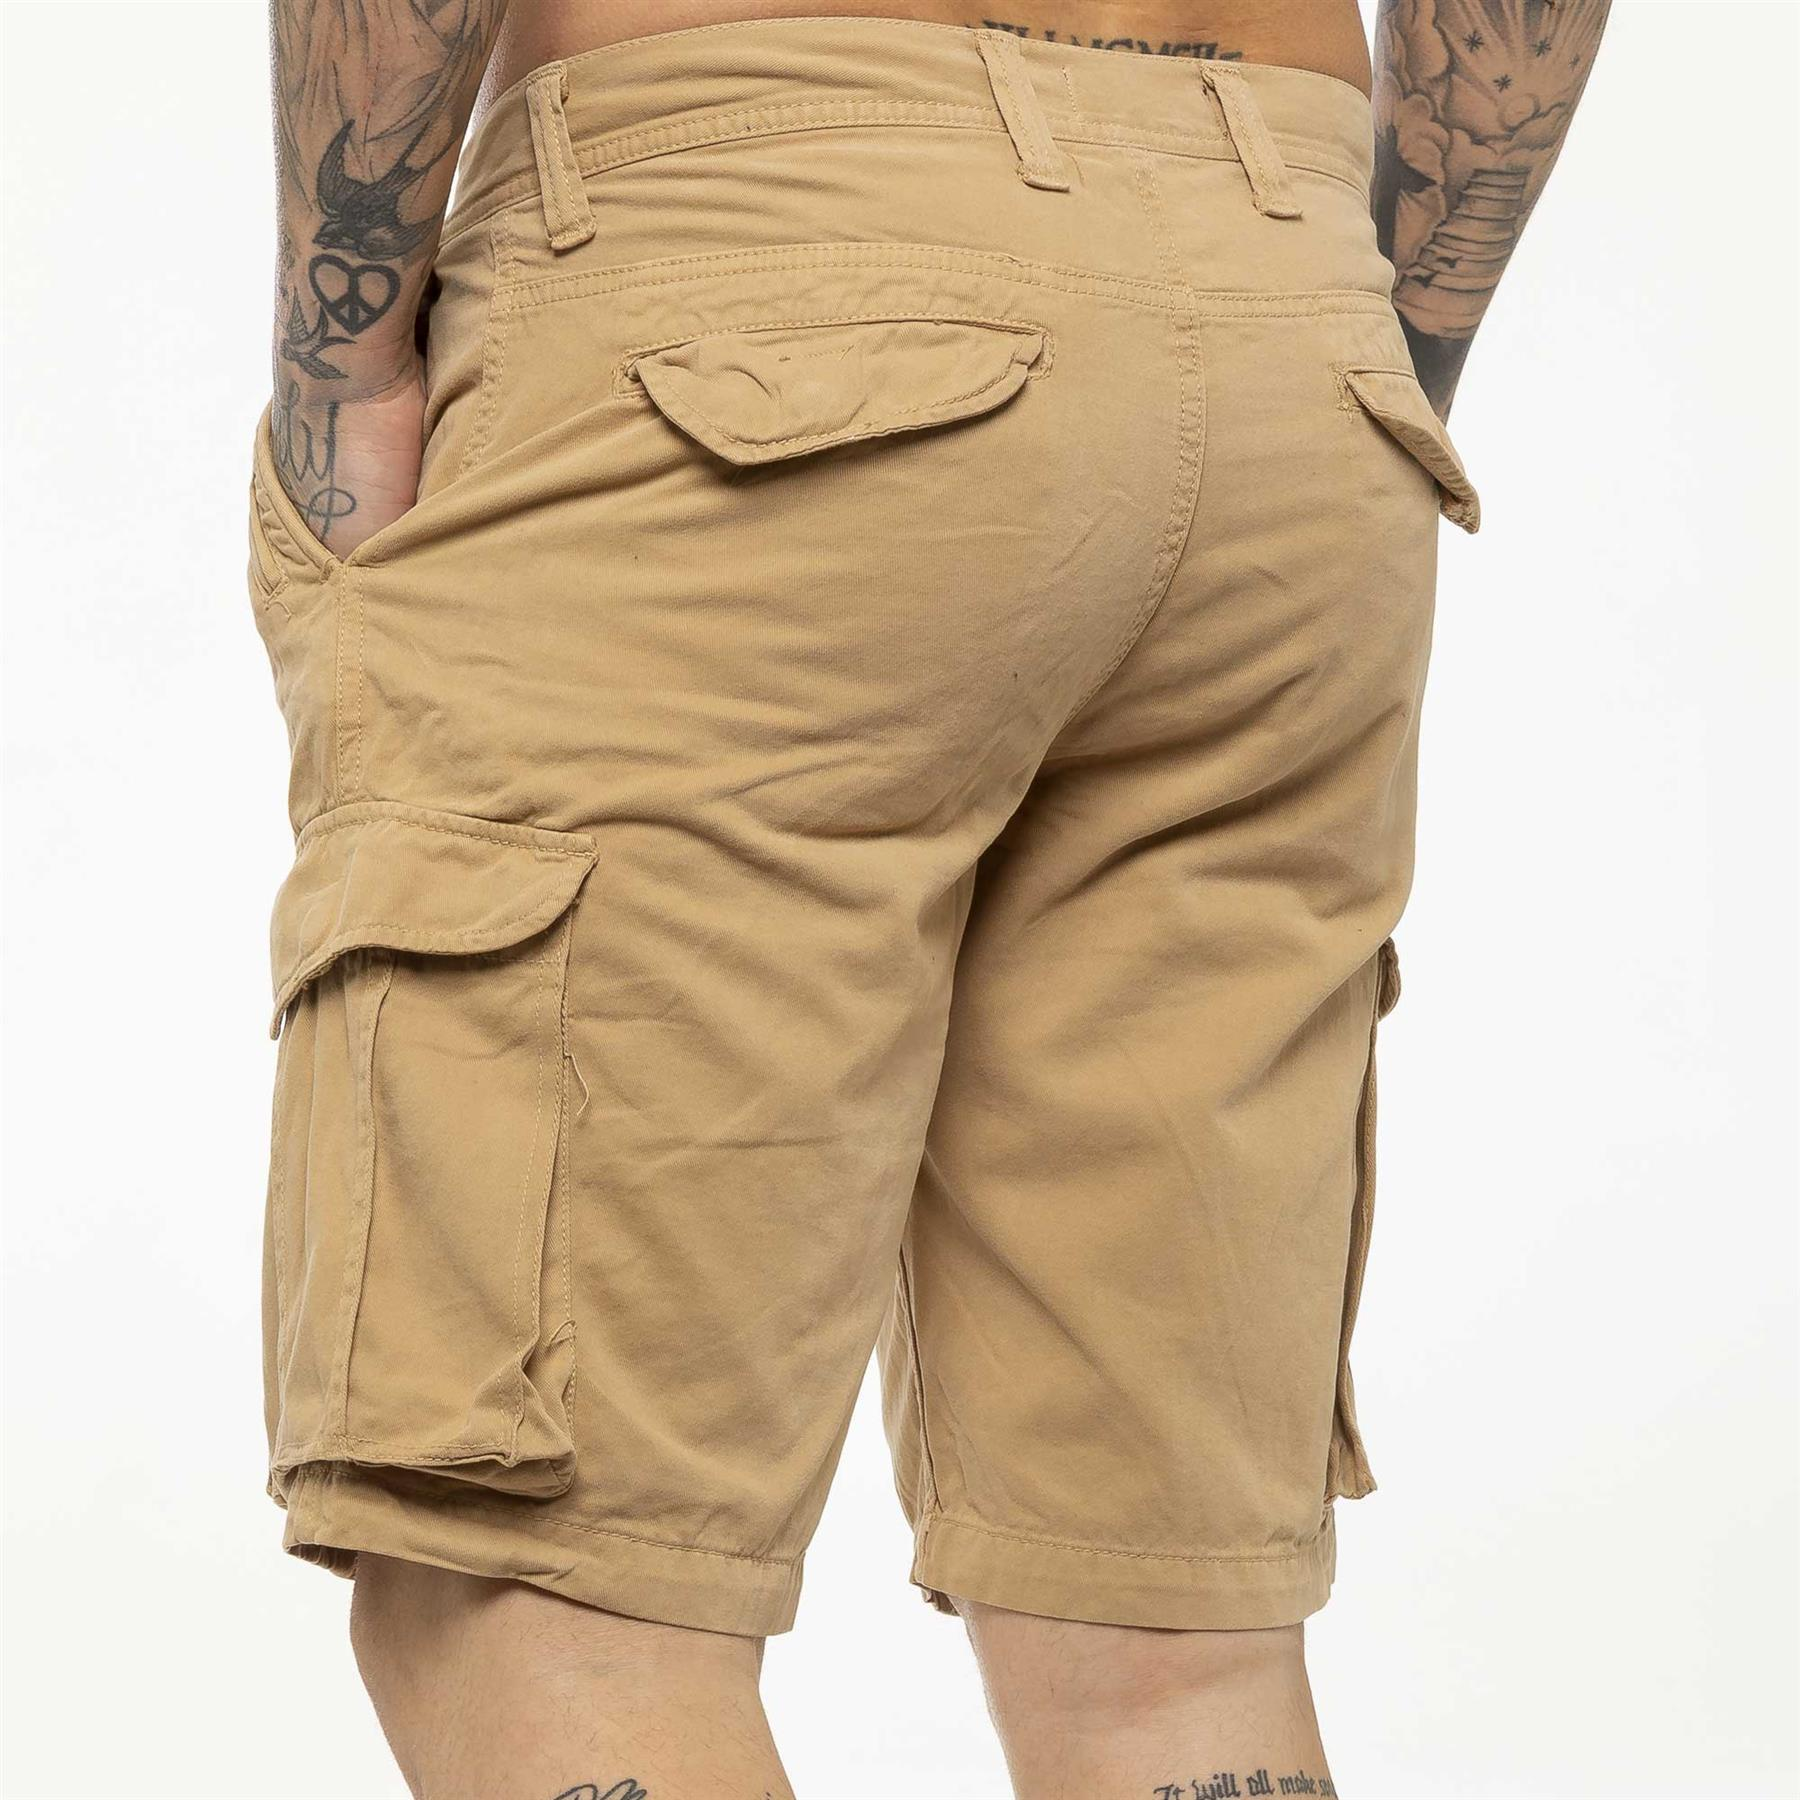 thumbnail 32 - Kruze Jeans Mens Army Combat Shorts Camouflage Cargo Casual Camo Work Half Pants